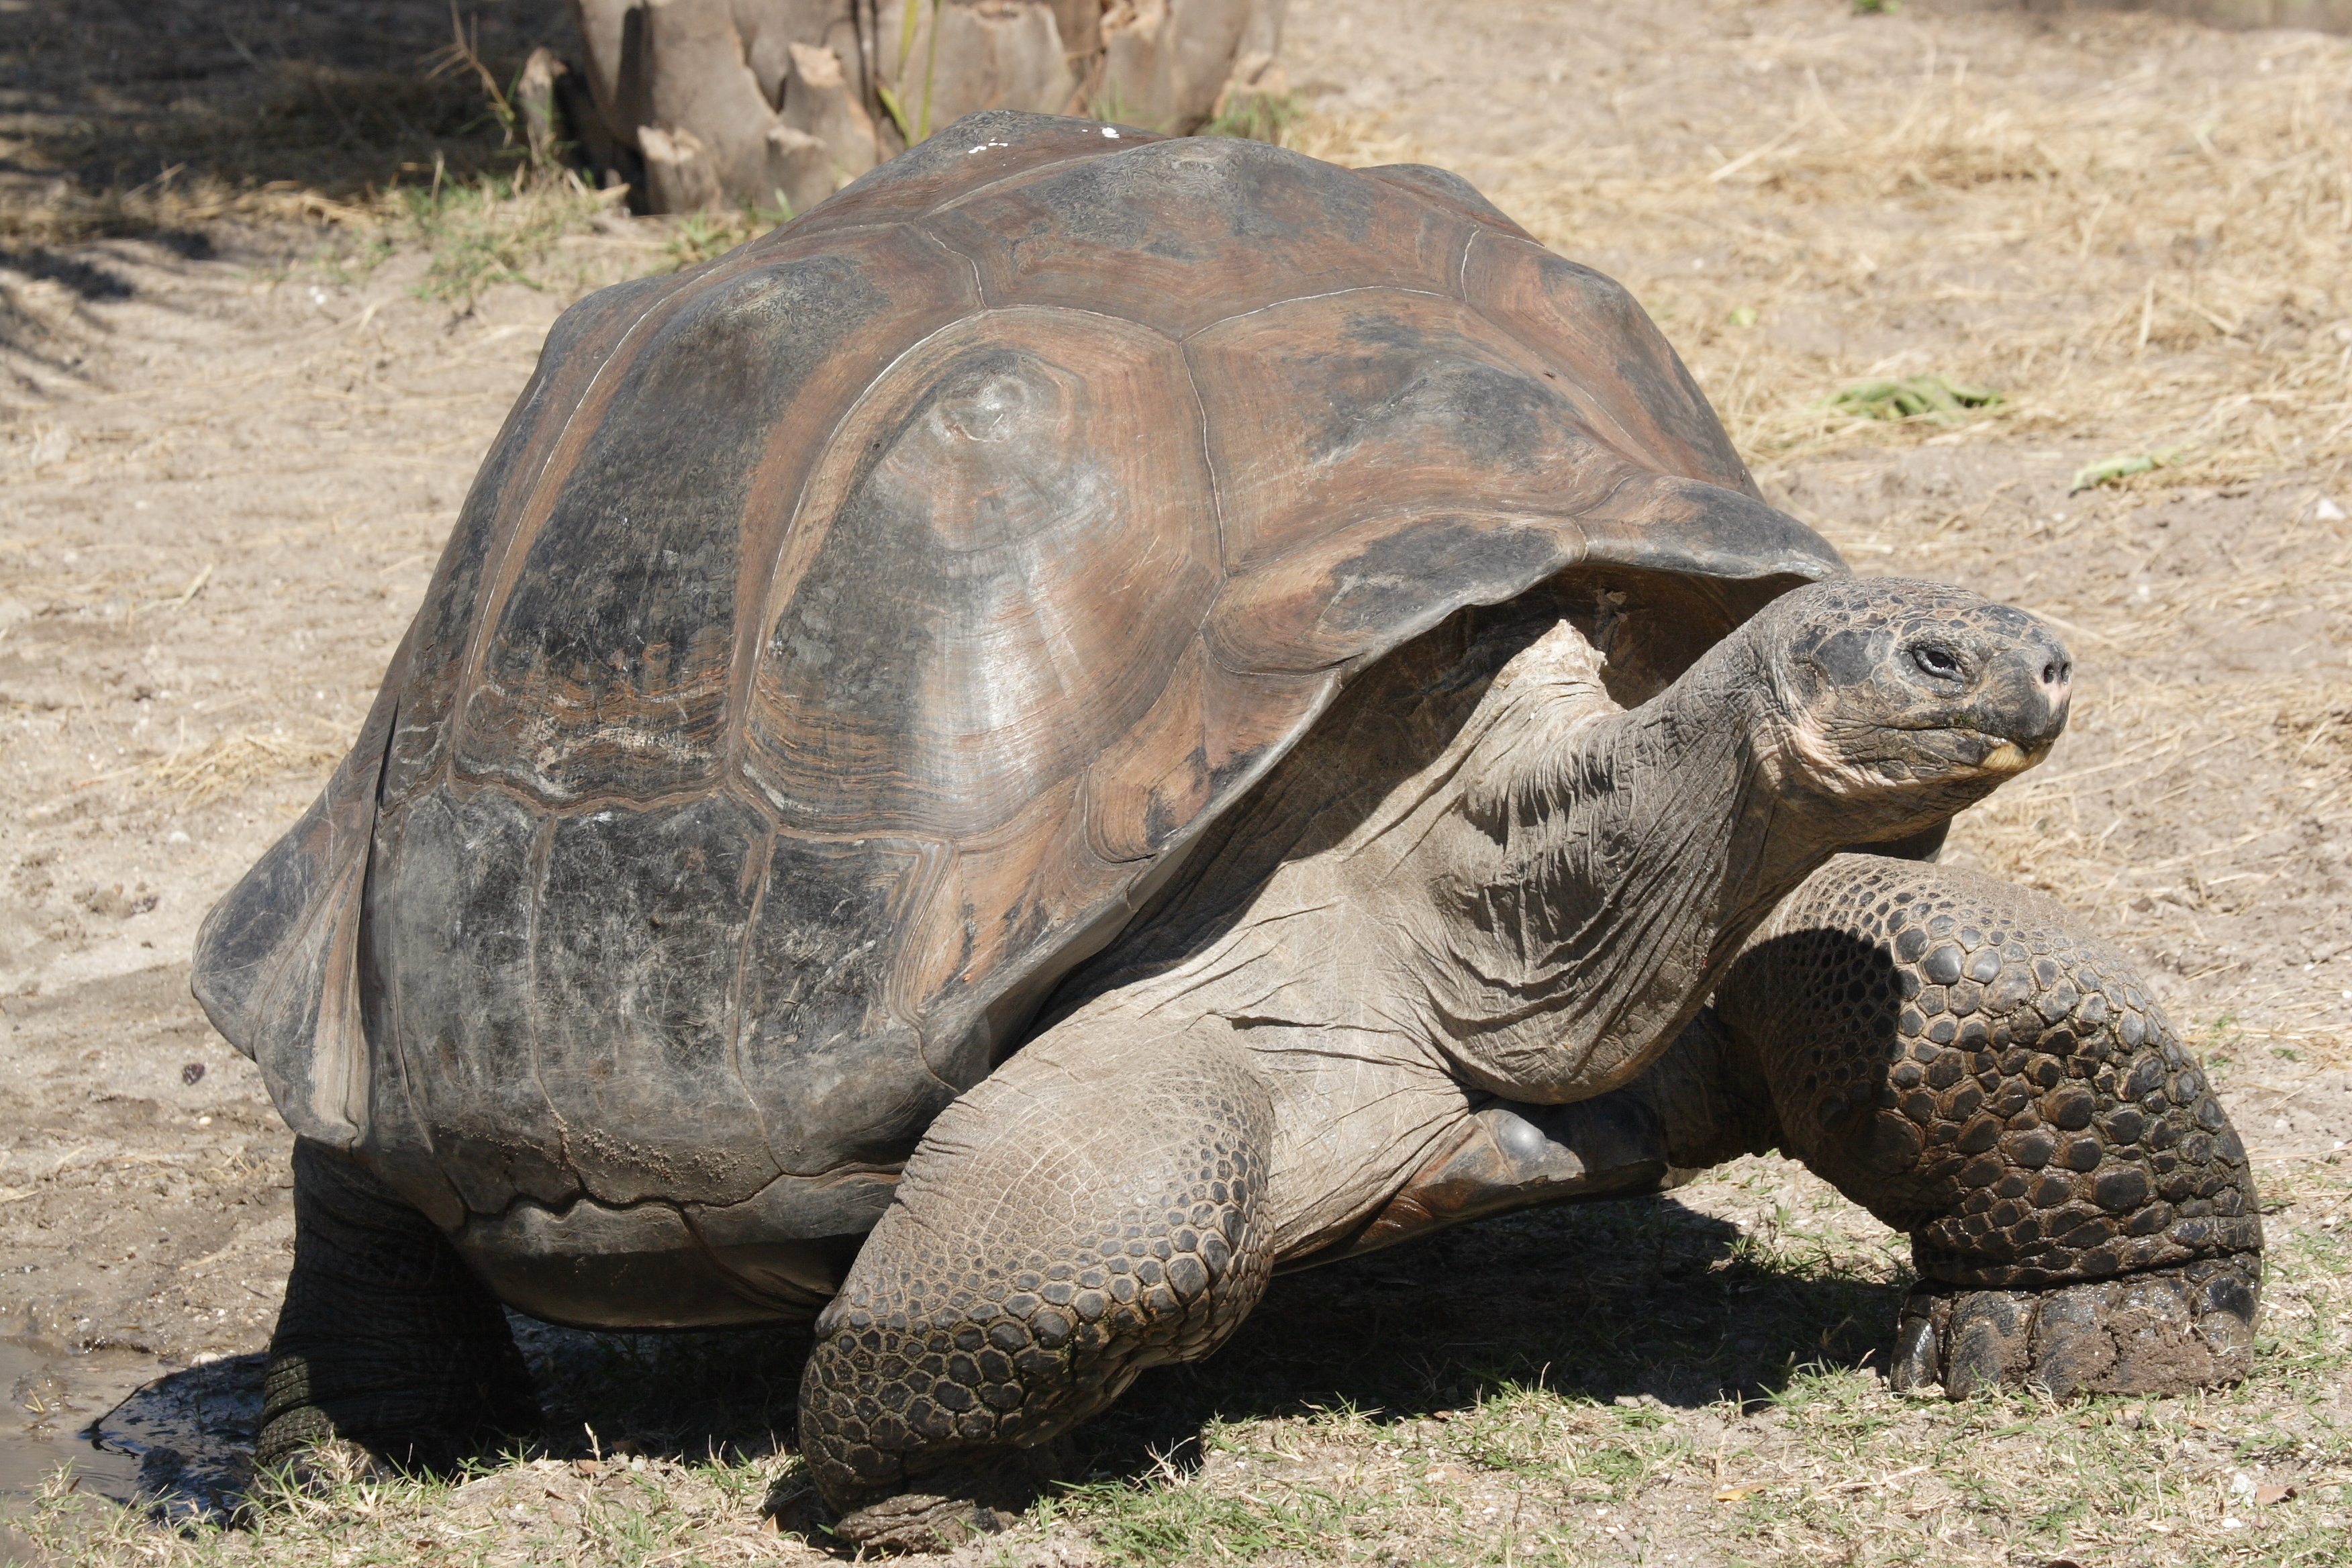 Gay Orthodox Tortoises (Yeah! That title should do the trick!)